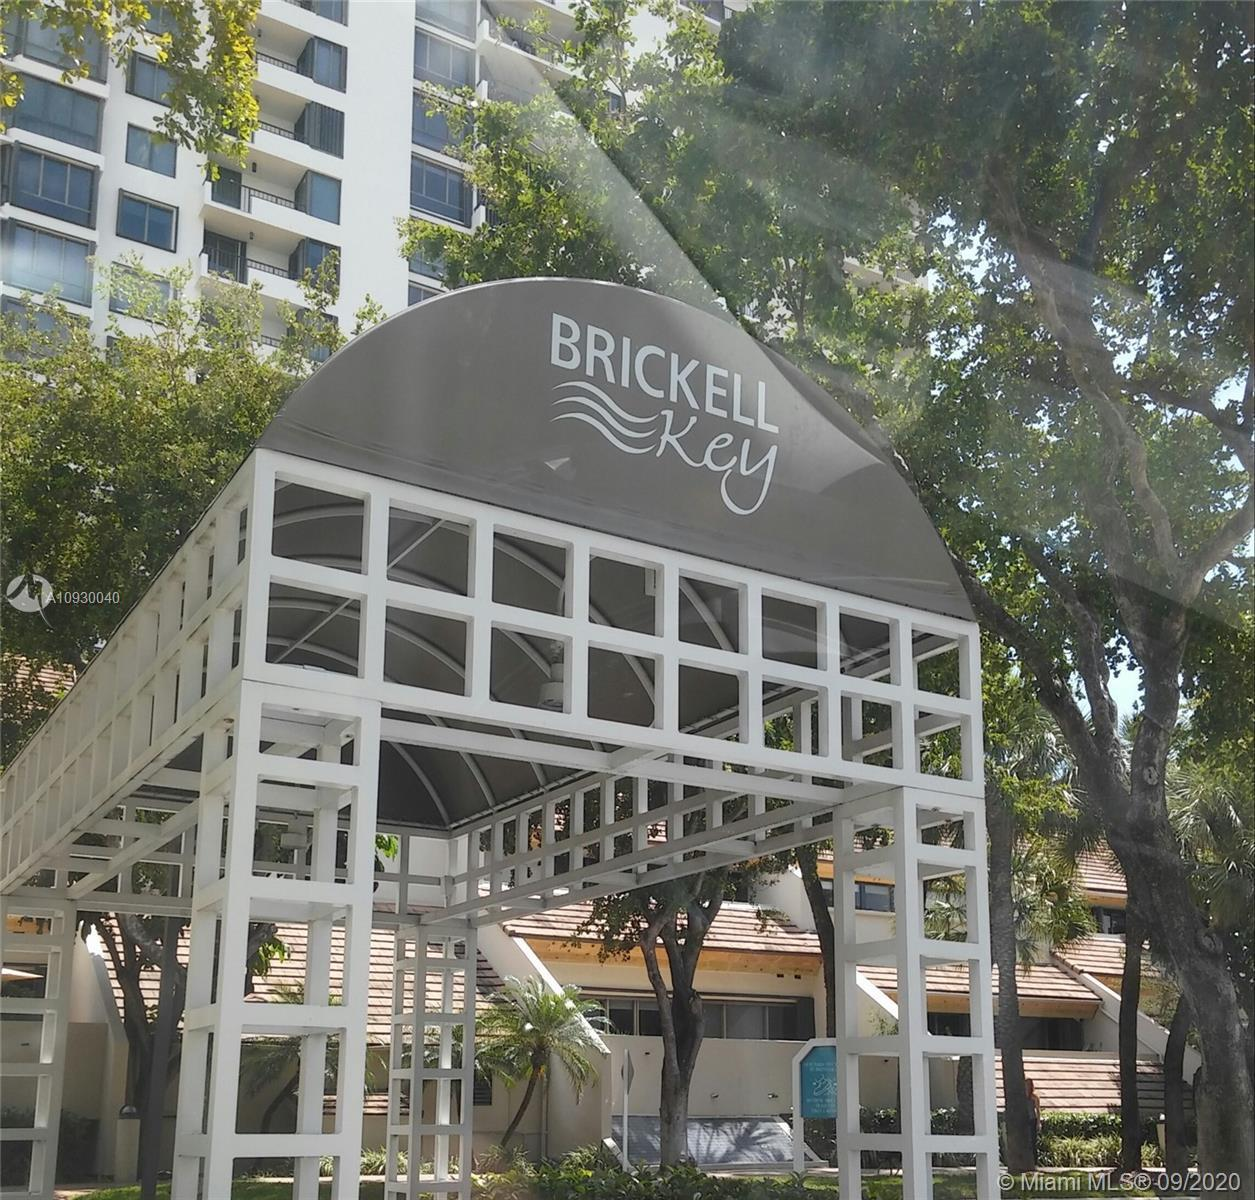 Spacious 2/2 condo at Brickell Key with two balconies! Amenities: Gym, new pool, BBQ area,